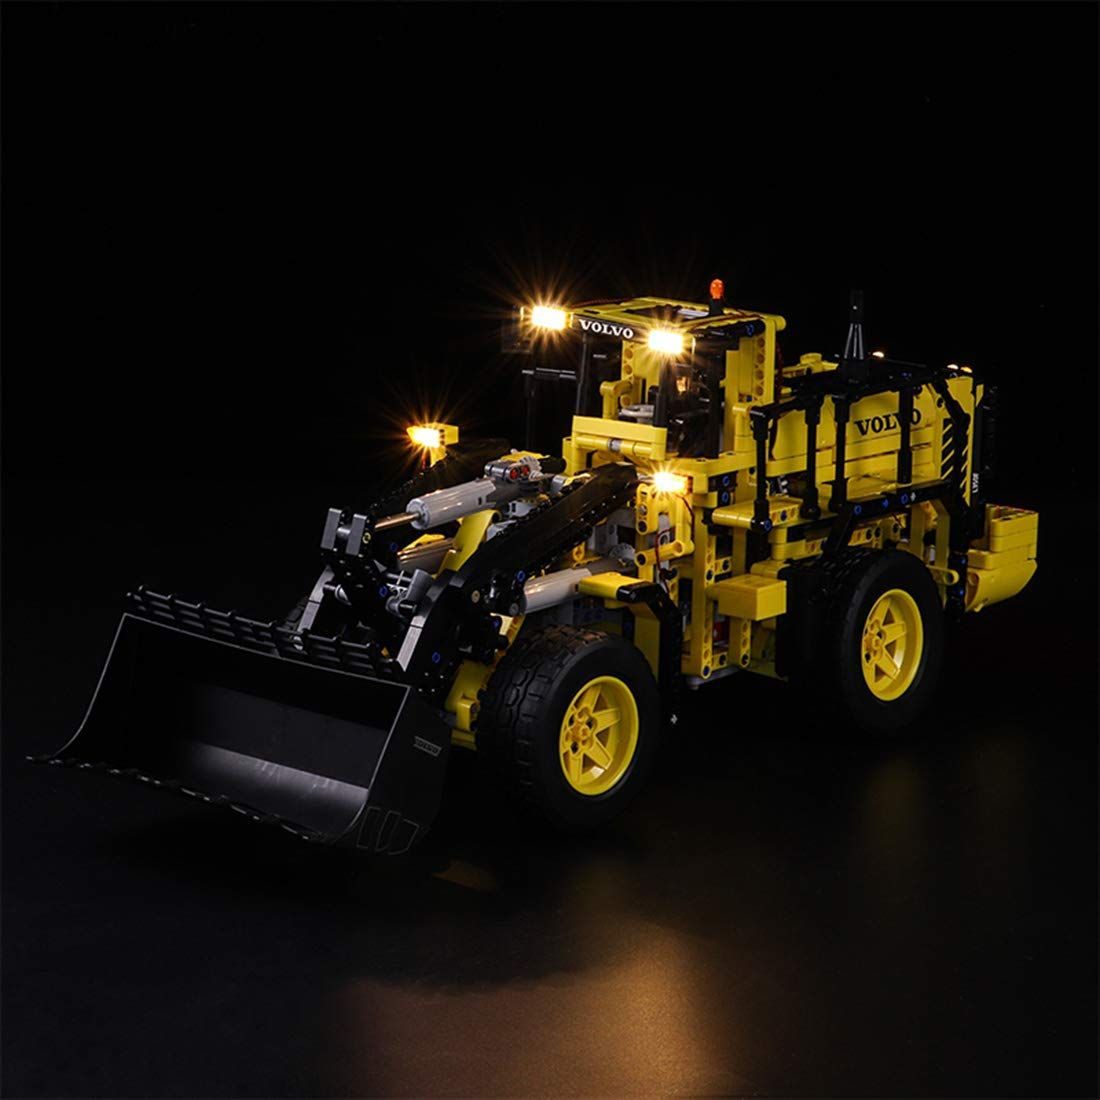 Tetake Licht Beleuchtung Led Beleuchtungsset Fur Lego Technic 42030 Volvo L350f Radlader Nicht Enthalten Lego Mode In 2020 Battery Operated Led Lights Volvo Lego Kits